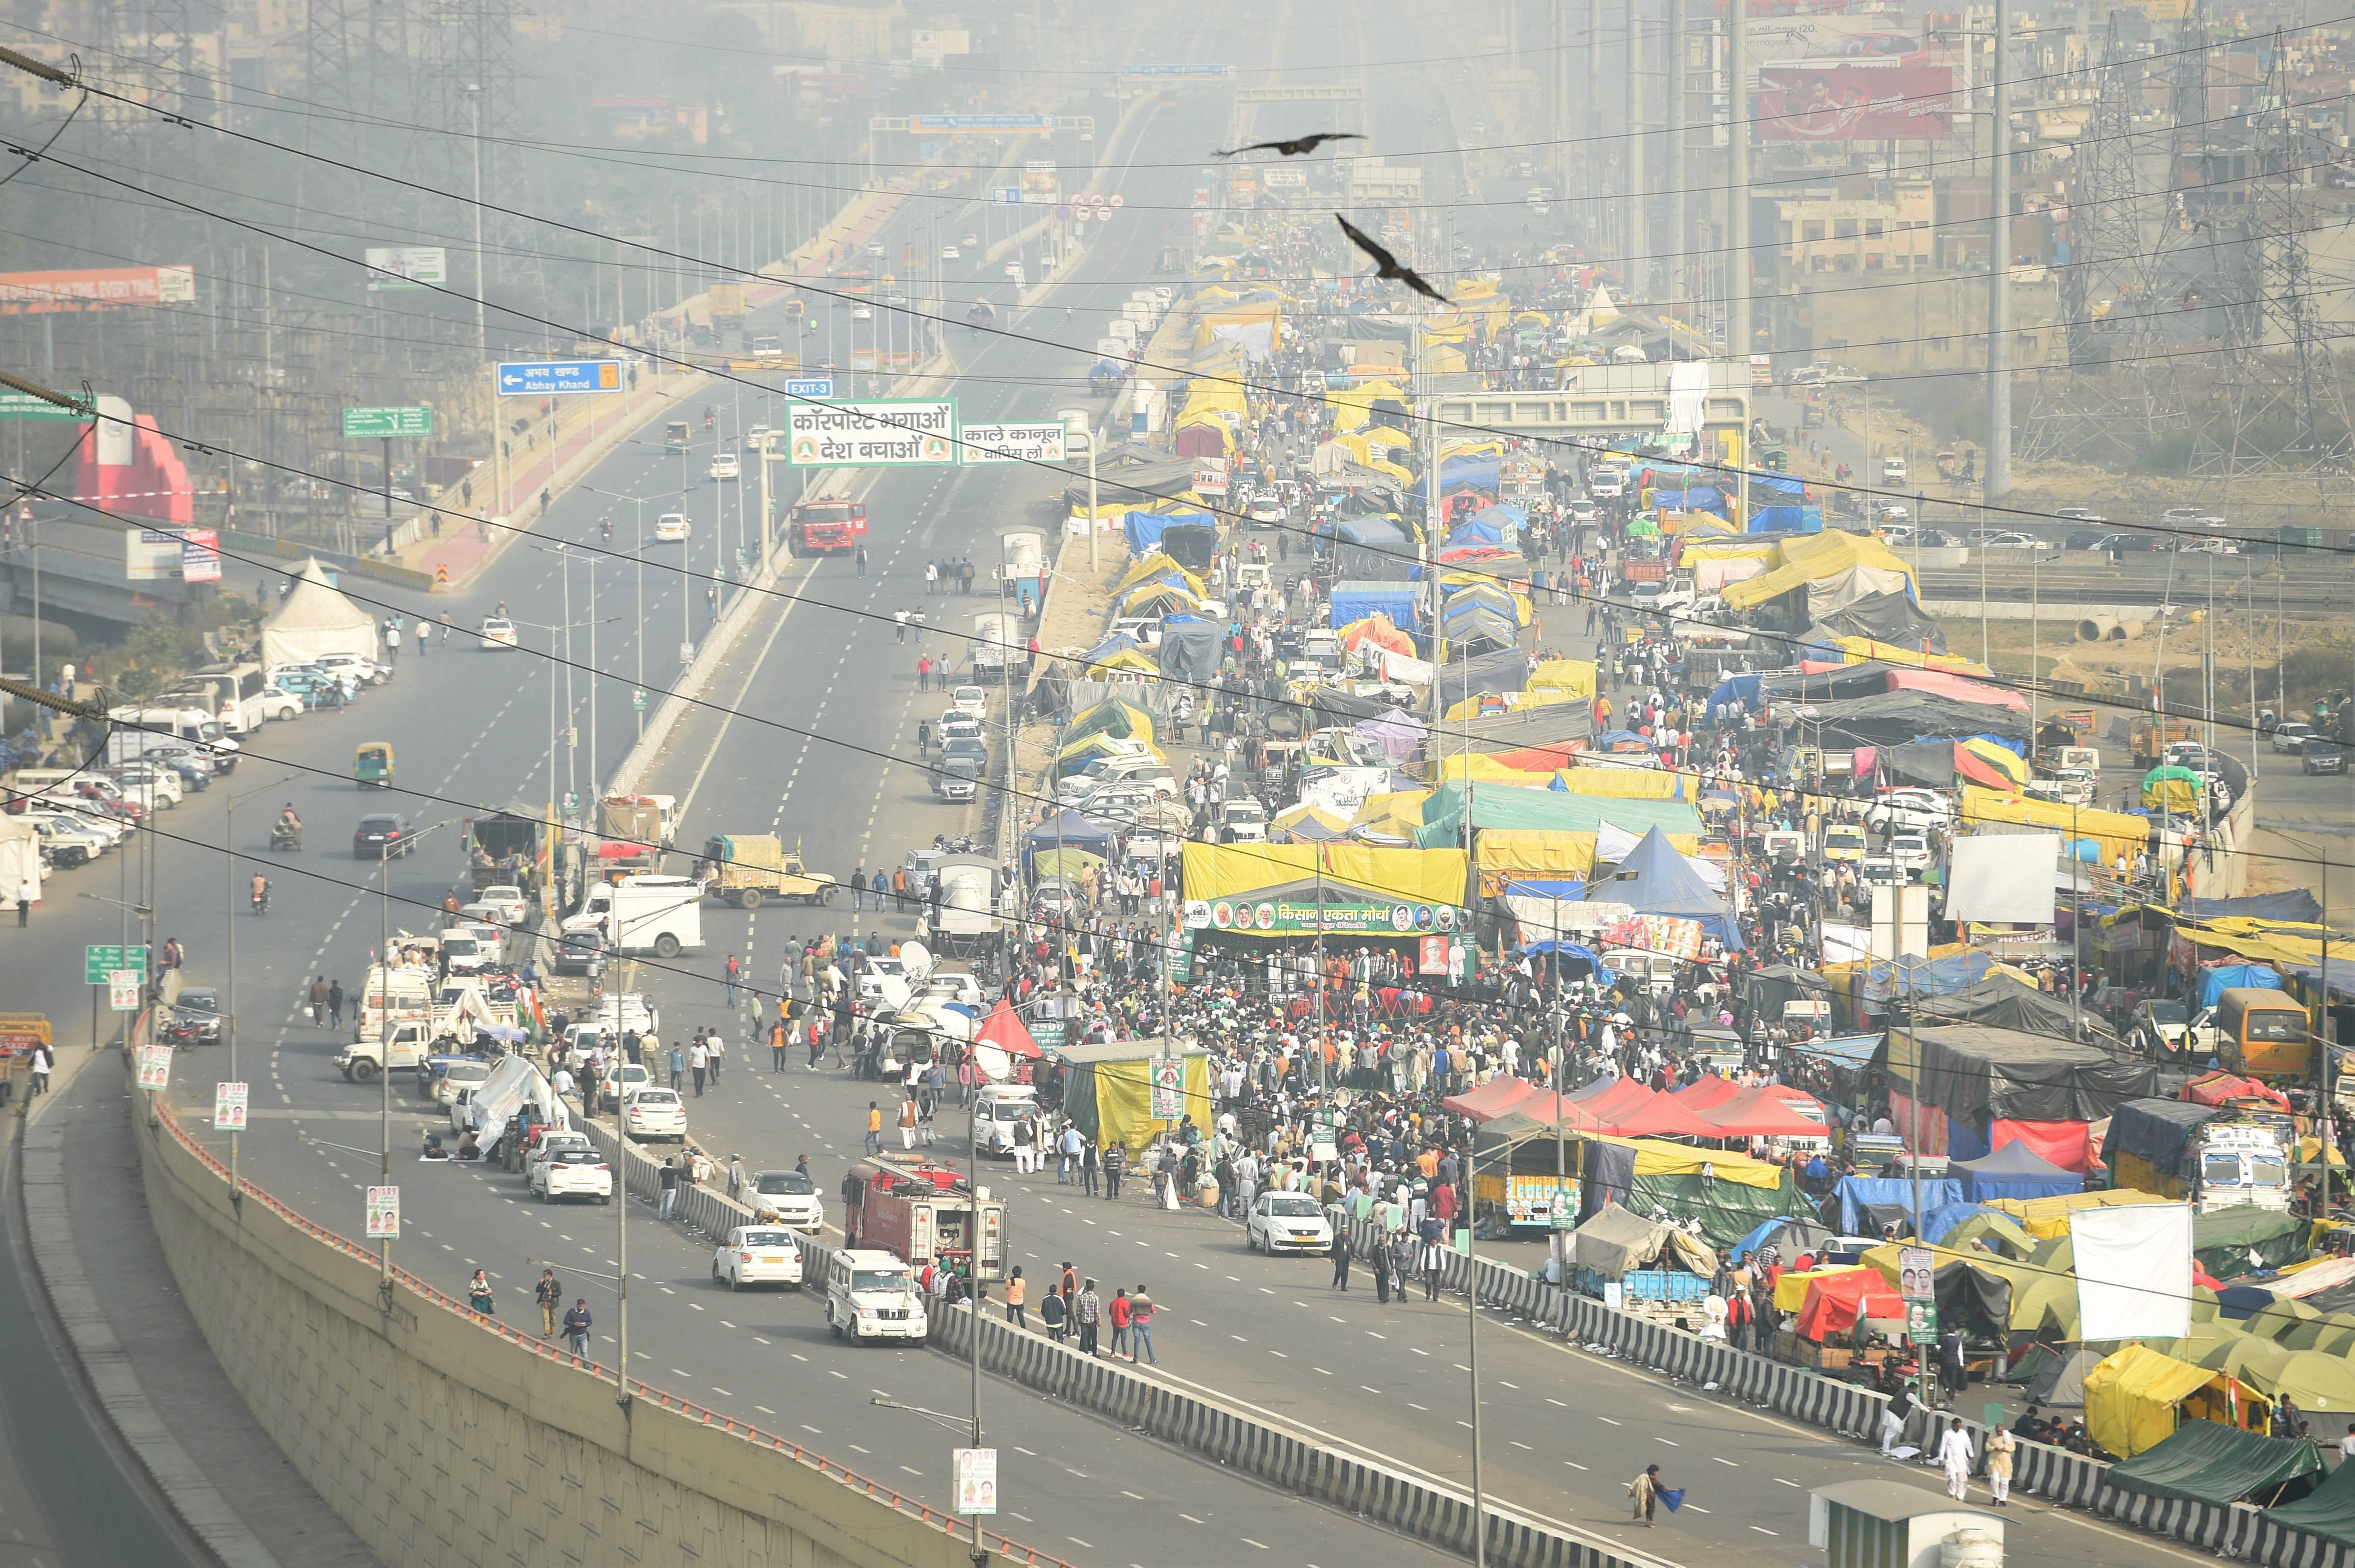 New Delhi: Top view of the site of farmers' ongoing agitation against Centre's farm reform laws, at Ghazipur border in New Delhi, Tuesday, Feb. 2, 2021. (PTI Photo/Vijay Verma) (PTI02_02_2021_000120B) *** Local Caption ***